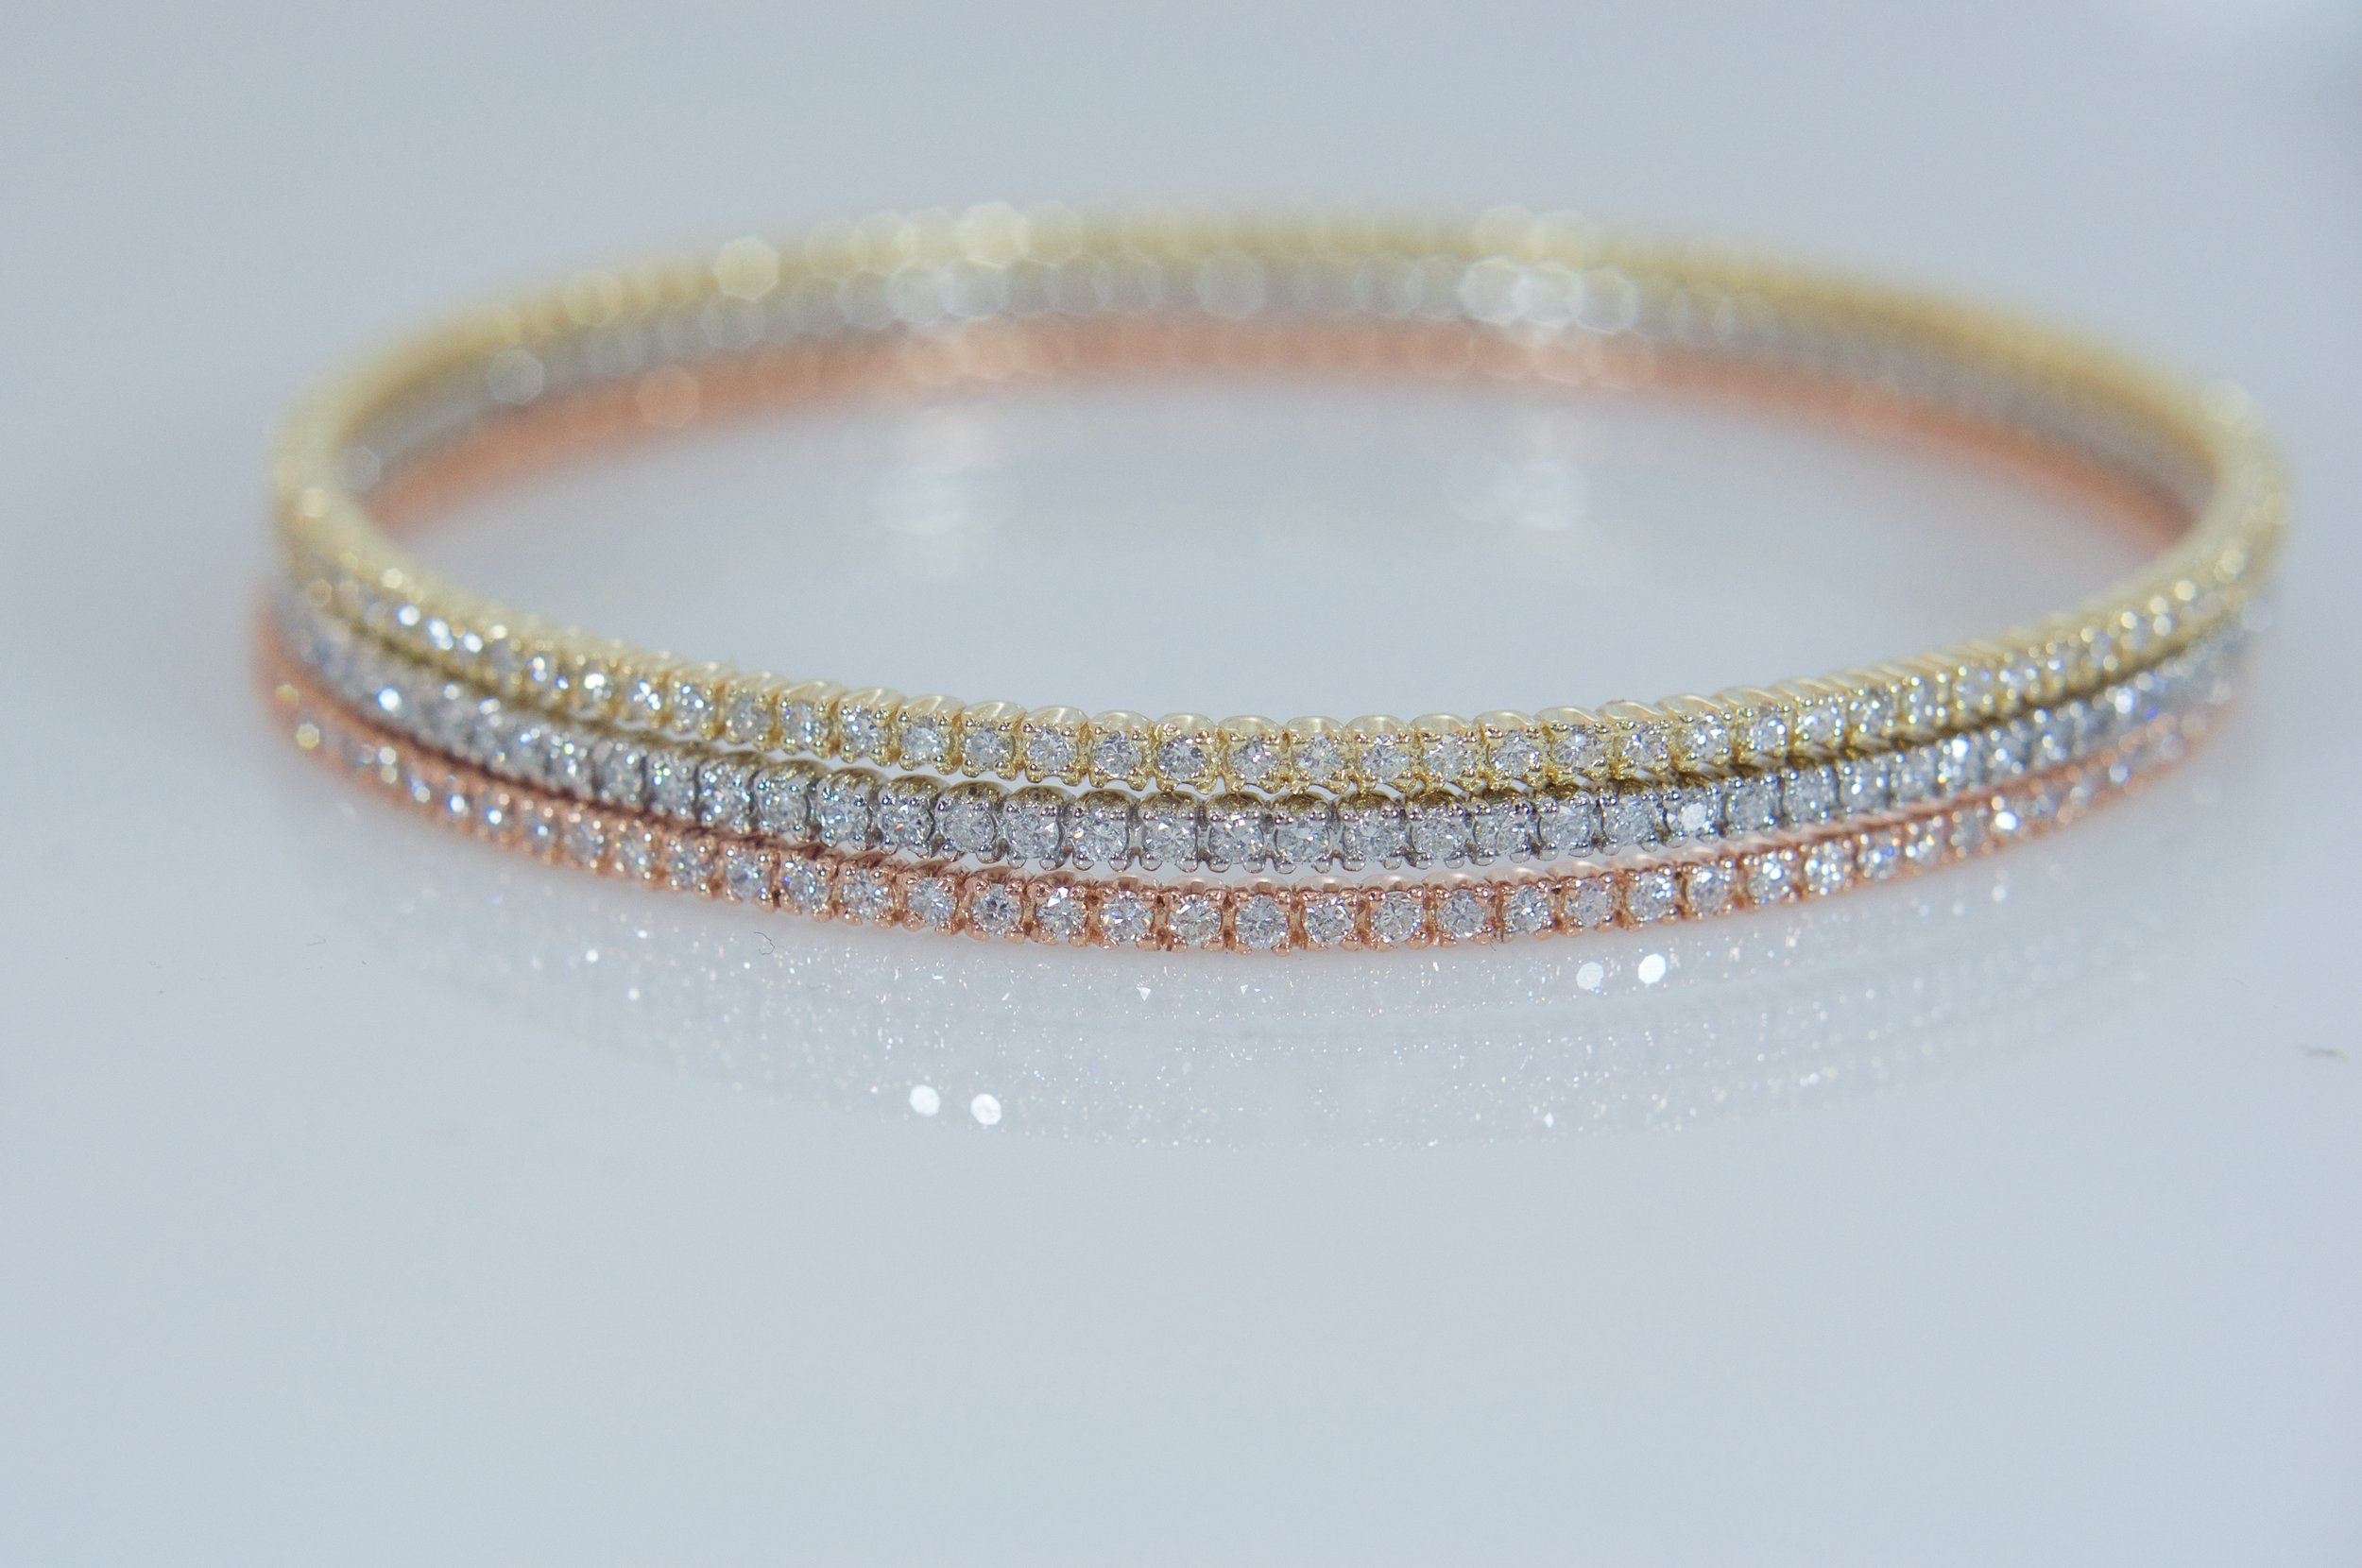 Three diamond eternity bangles in yellow, white, and rose gold